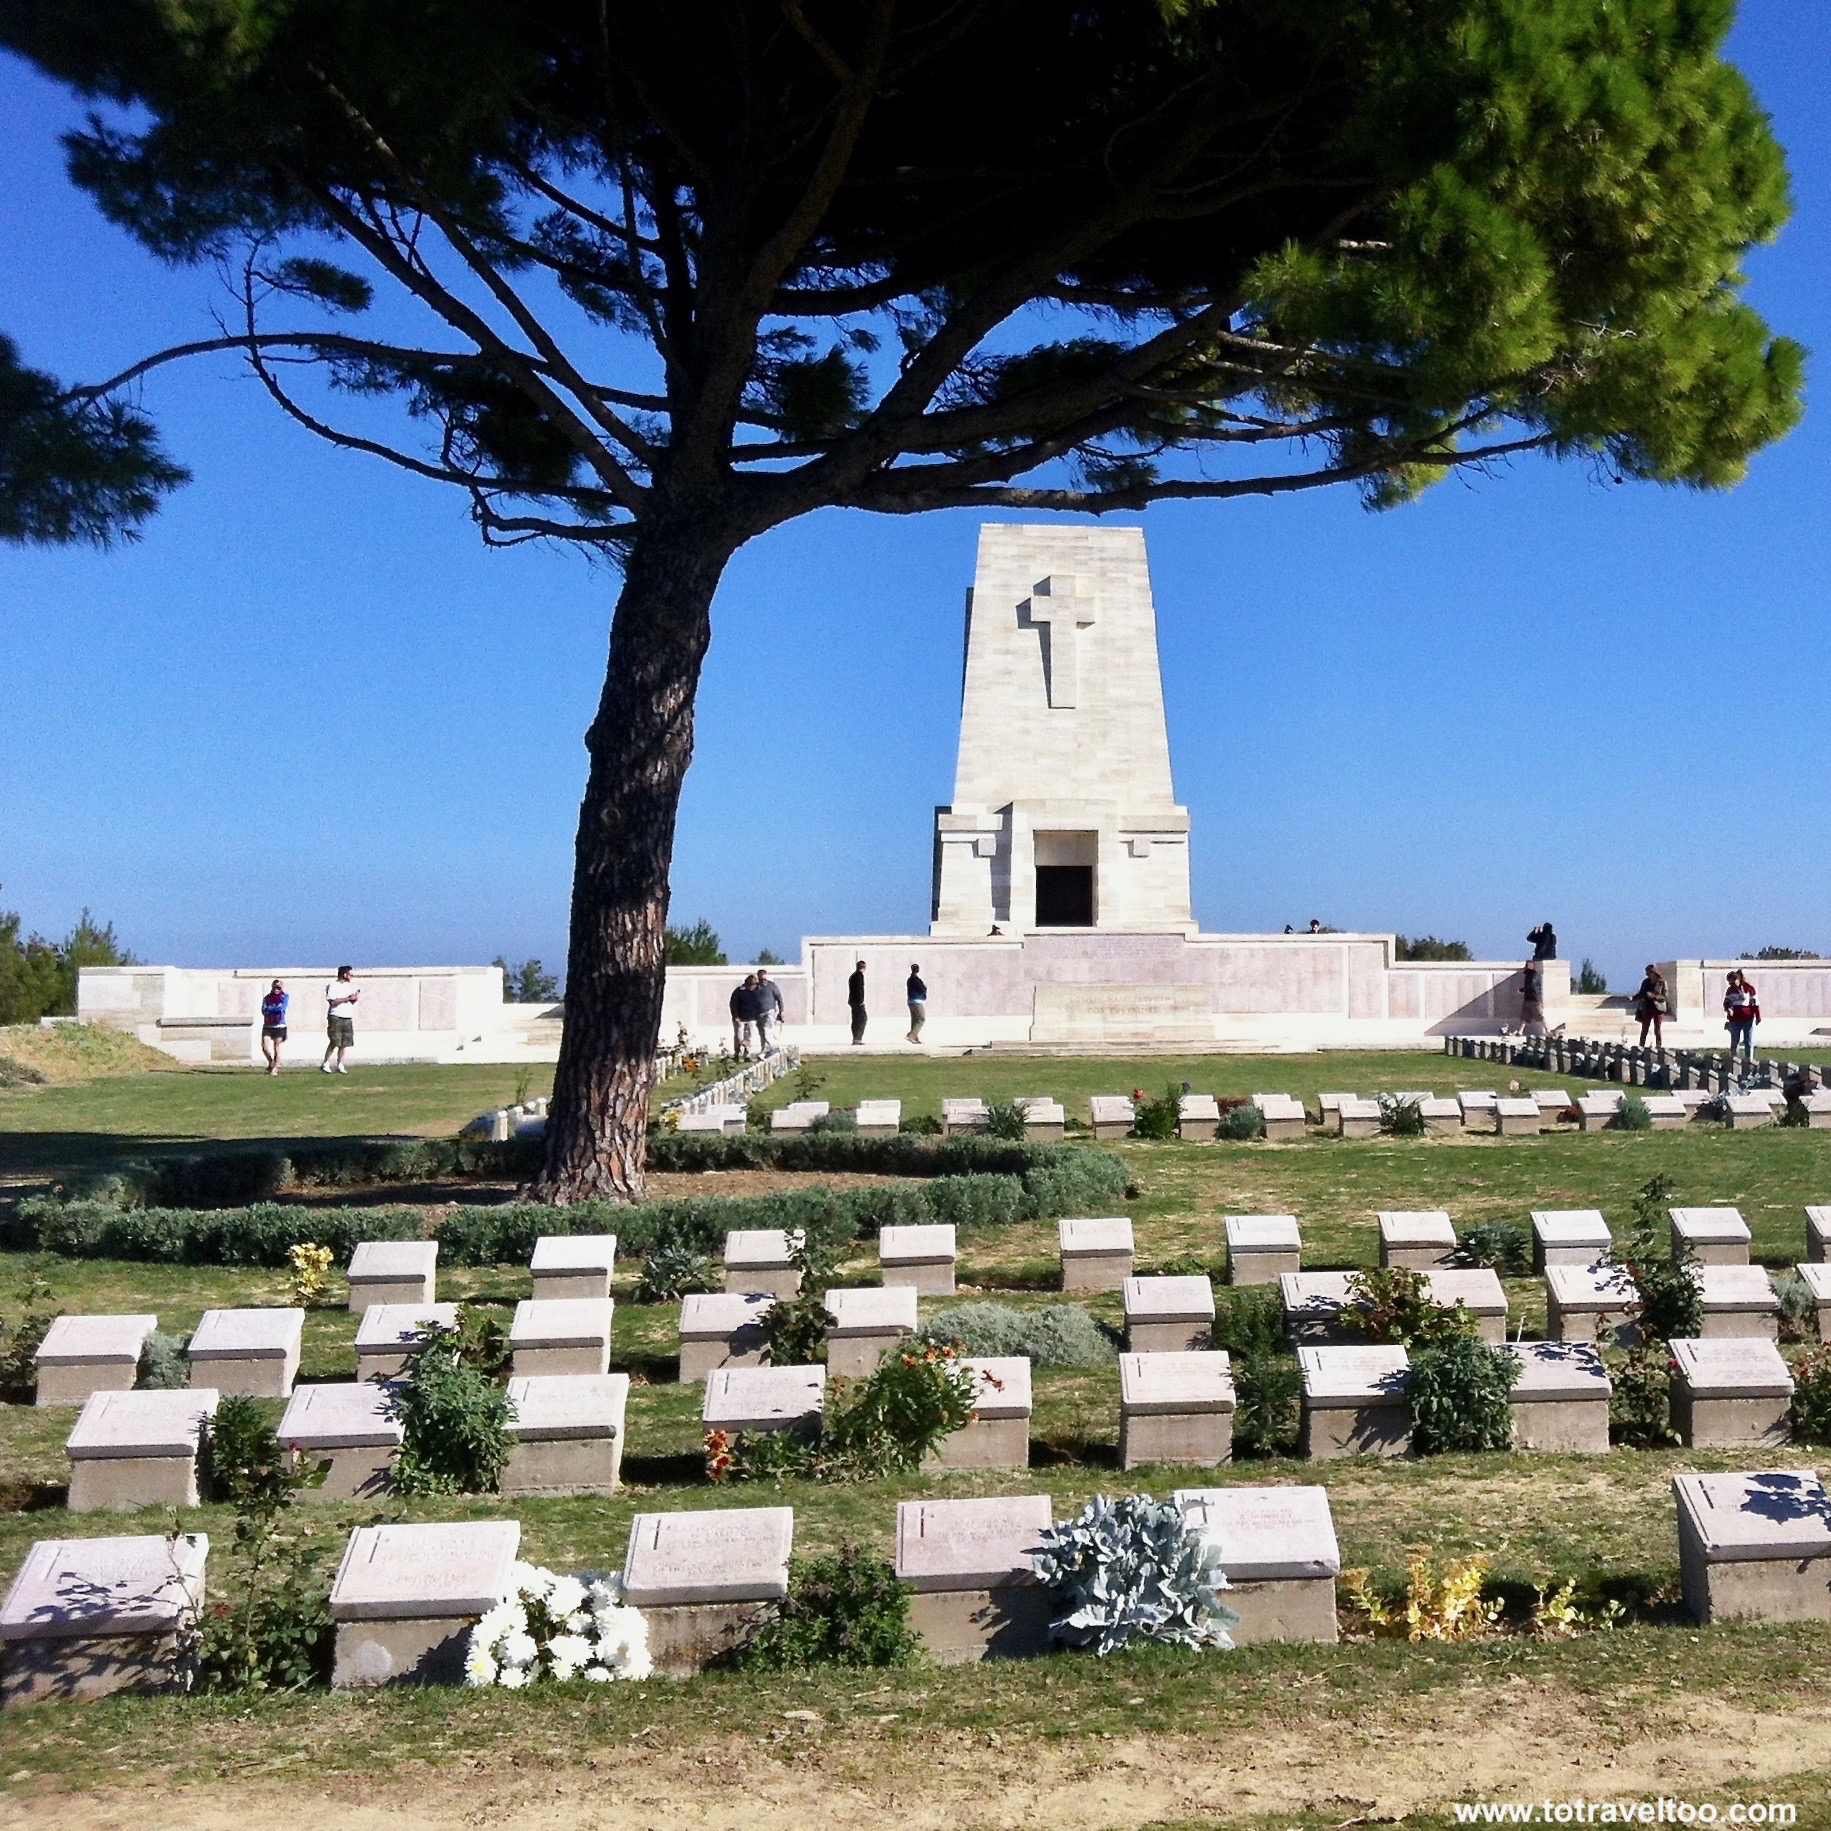 Lone Pine Cemetery at Gallipoli